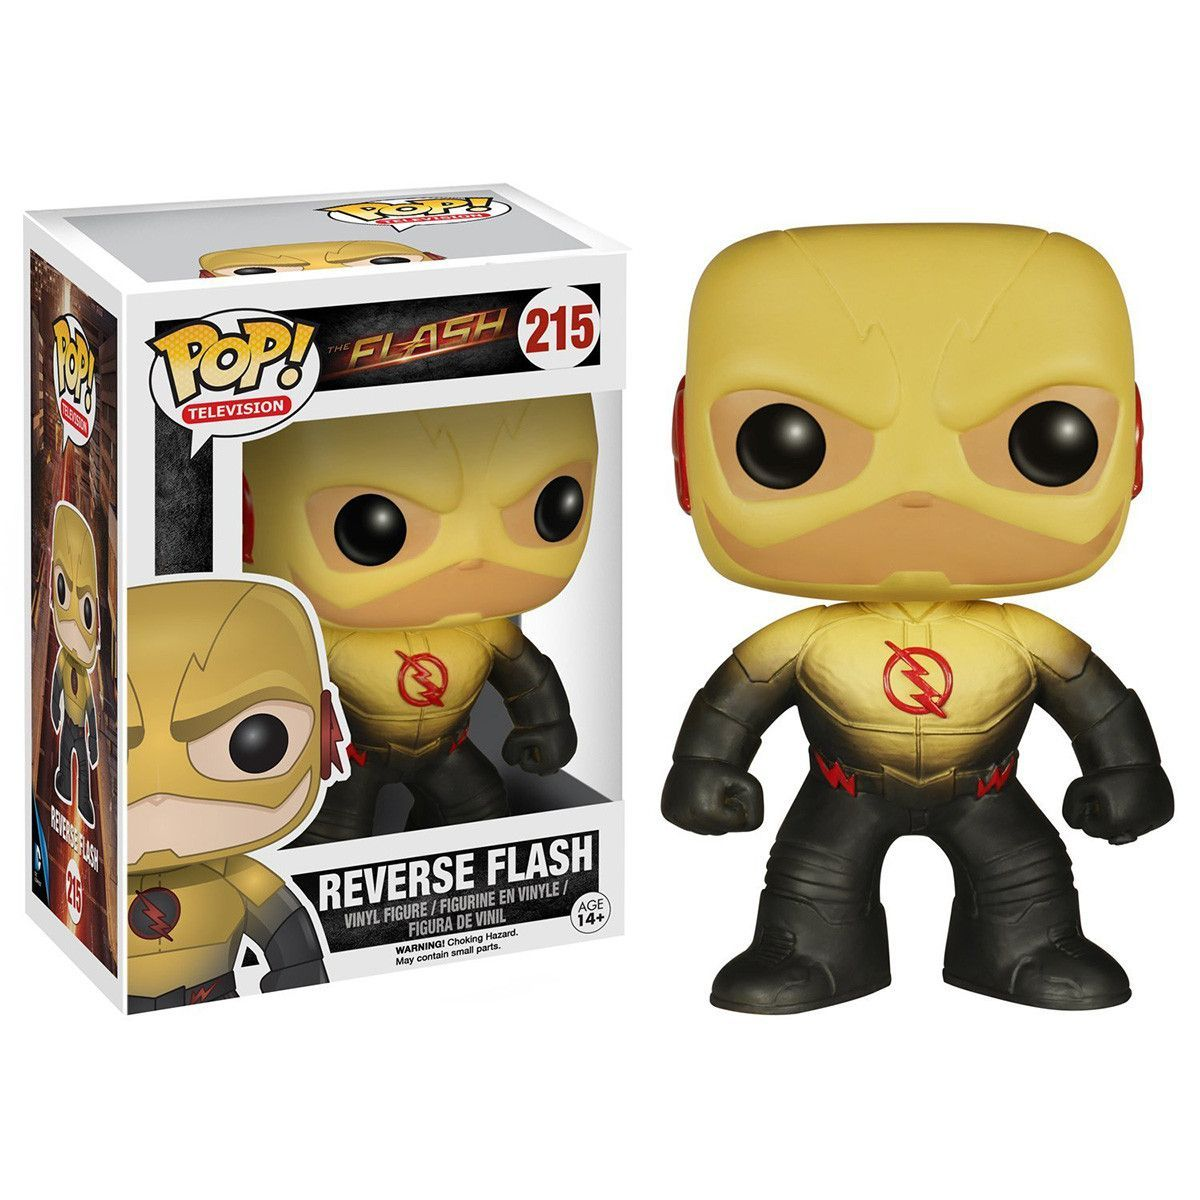 0d53f4a336a This is The Reverse Flash POP Vinyl Figure that is produced by Funko. Way  cool! Fans of The Flash are going to love this little guy.